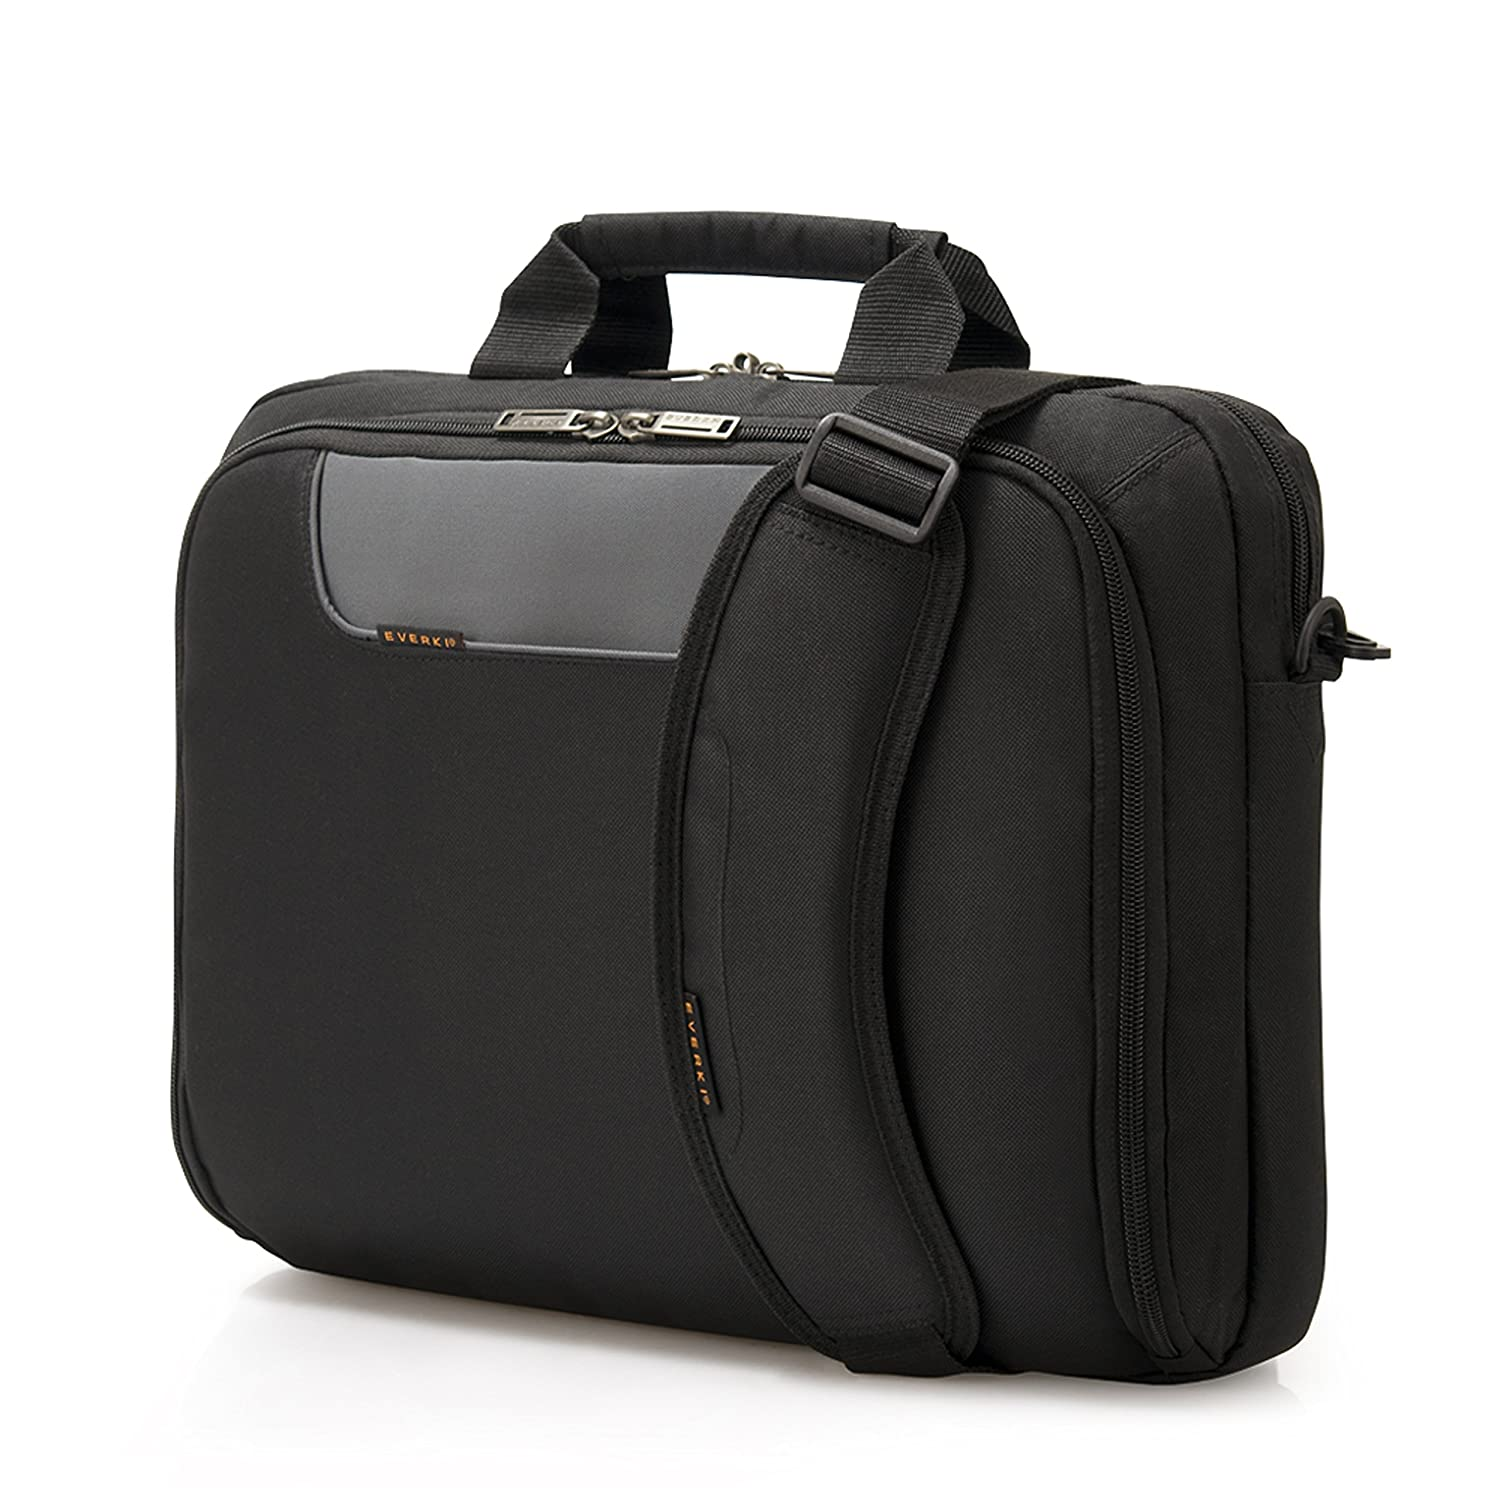 Everki Advance iPad/Tablet/Ultrabook Laptop Bag Briefcase for 11.6-Inch Laptops (EKB407NCH11)